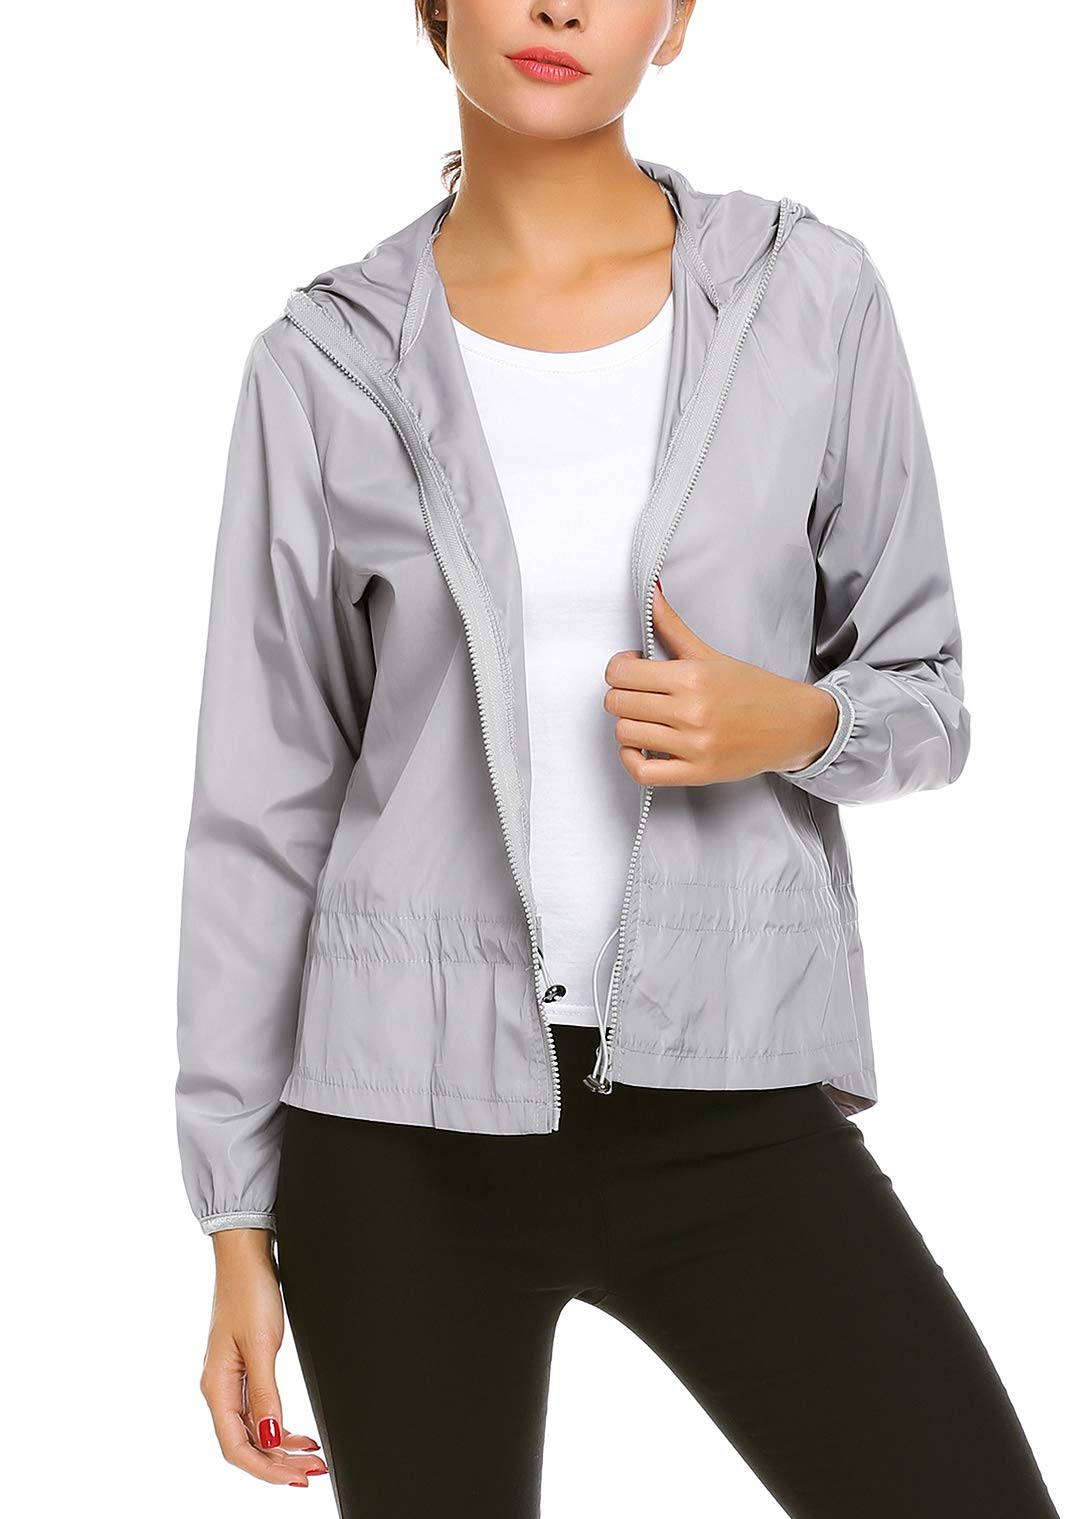 UNibelle Women's Lightweight Jacket UV Protect Quick Dry Windproof Skin Coat, 03-grey, Medium